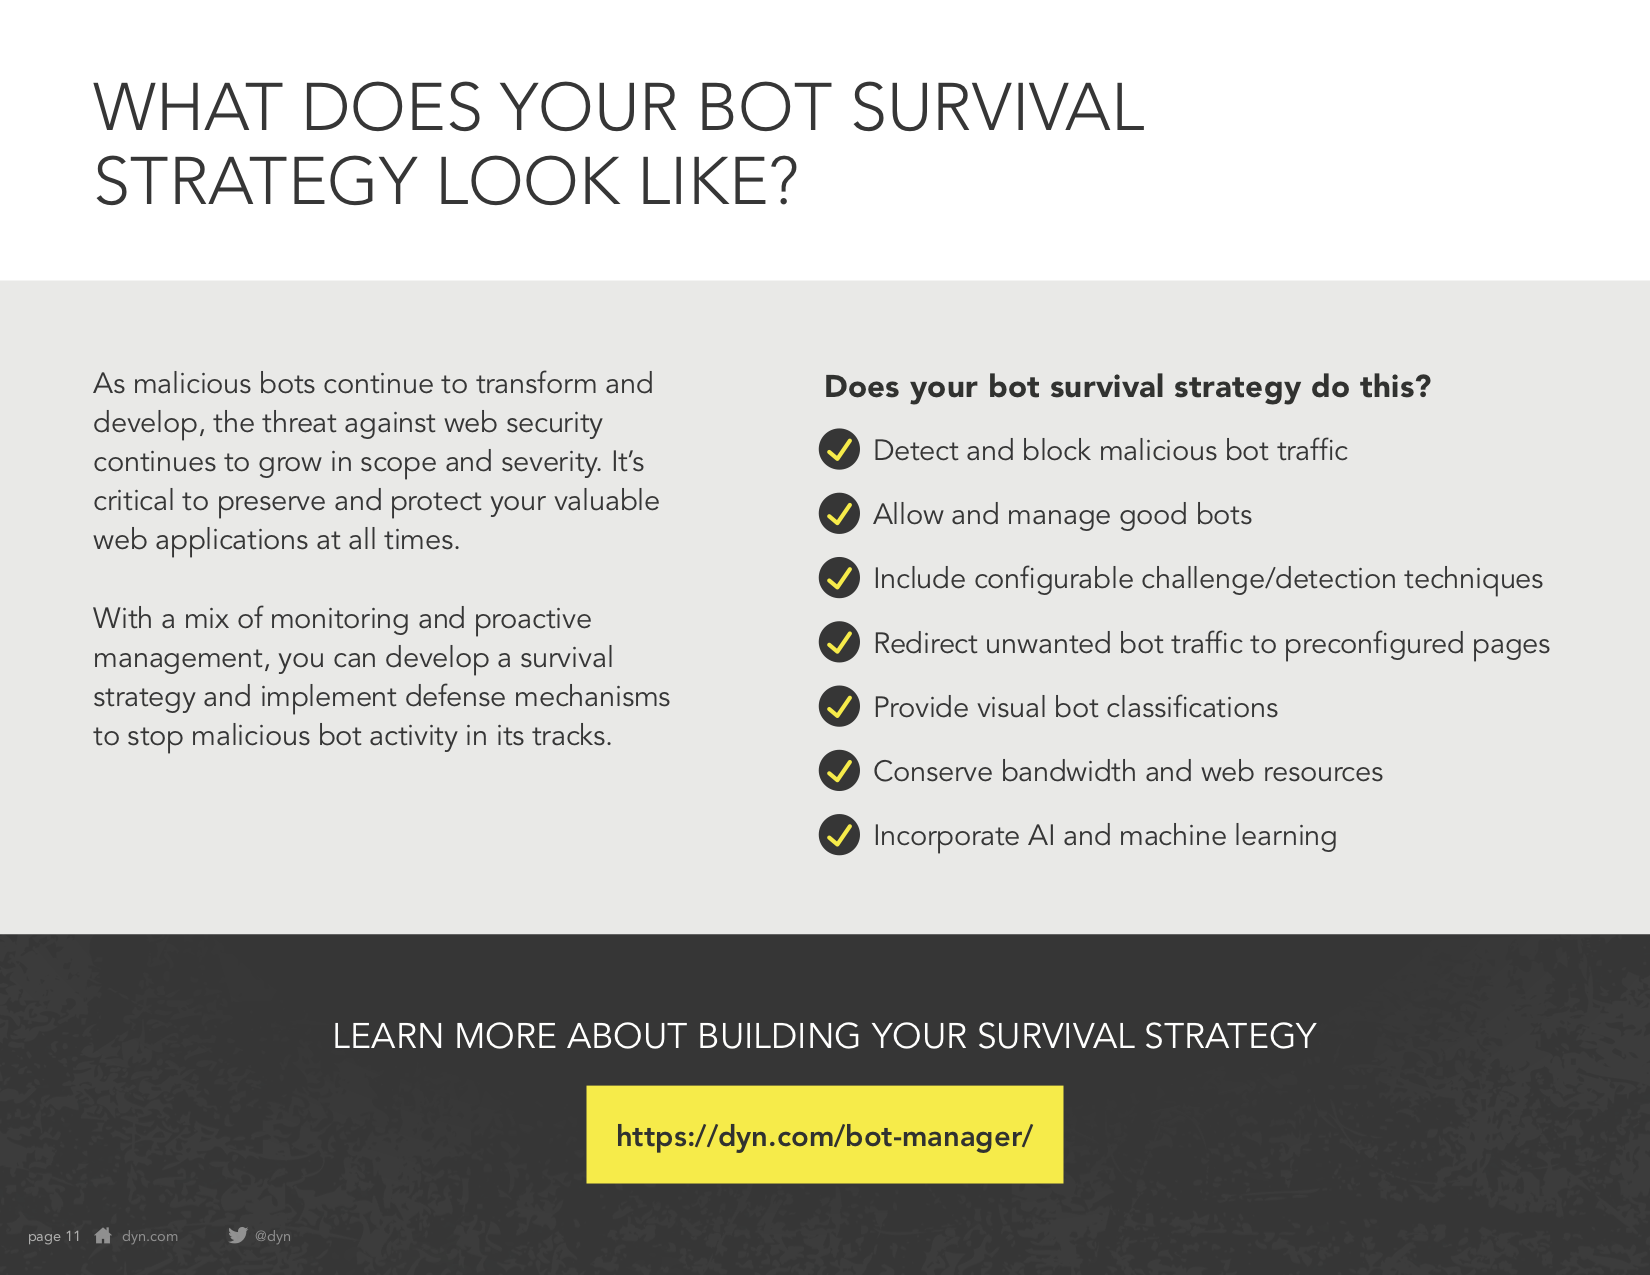 DarkBot Survival Guide_final (dragged) 3